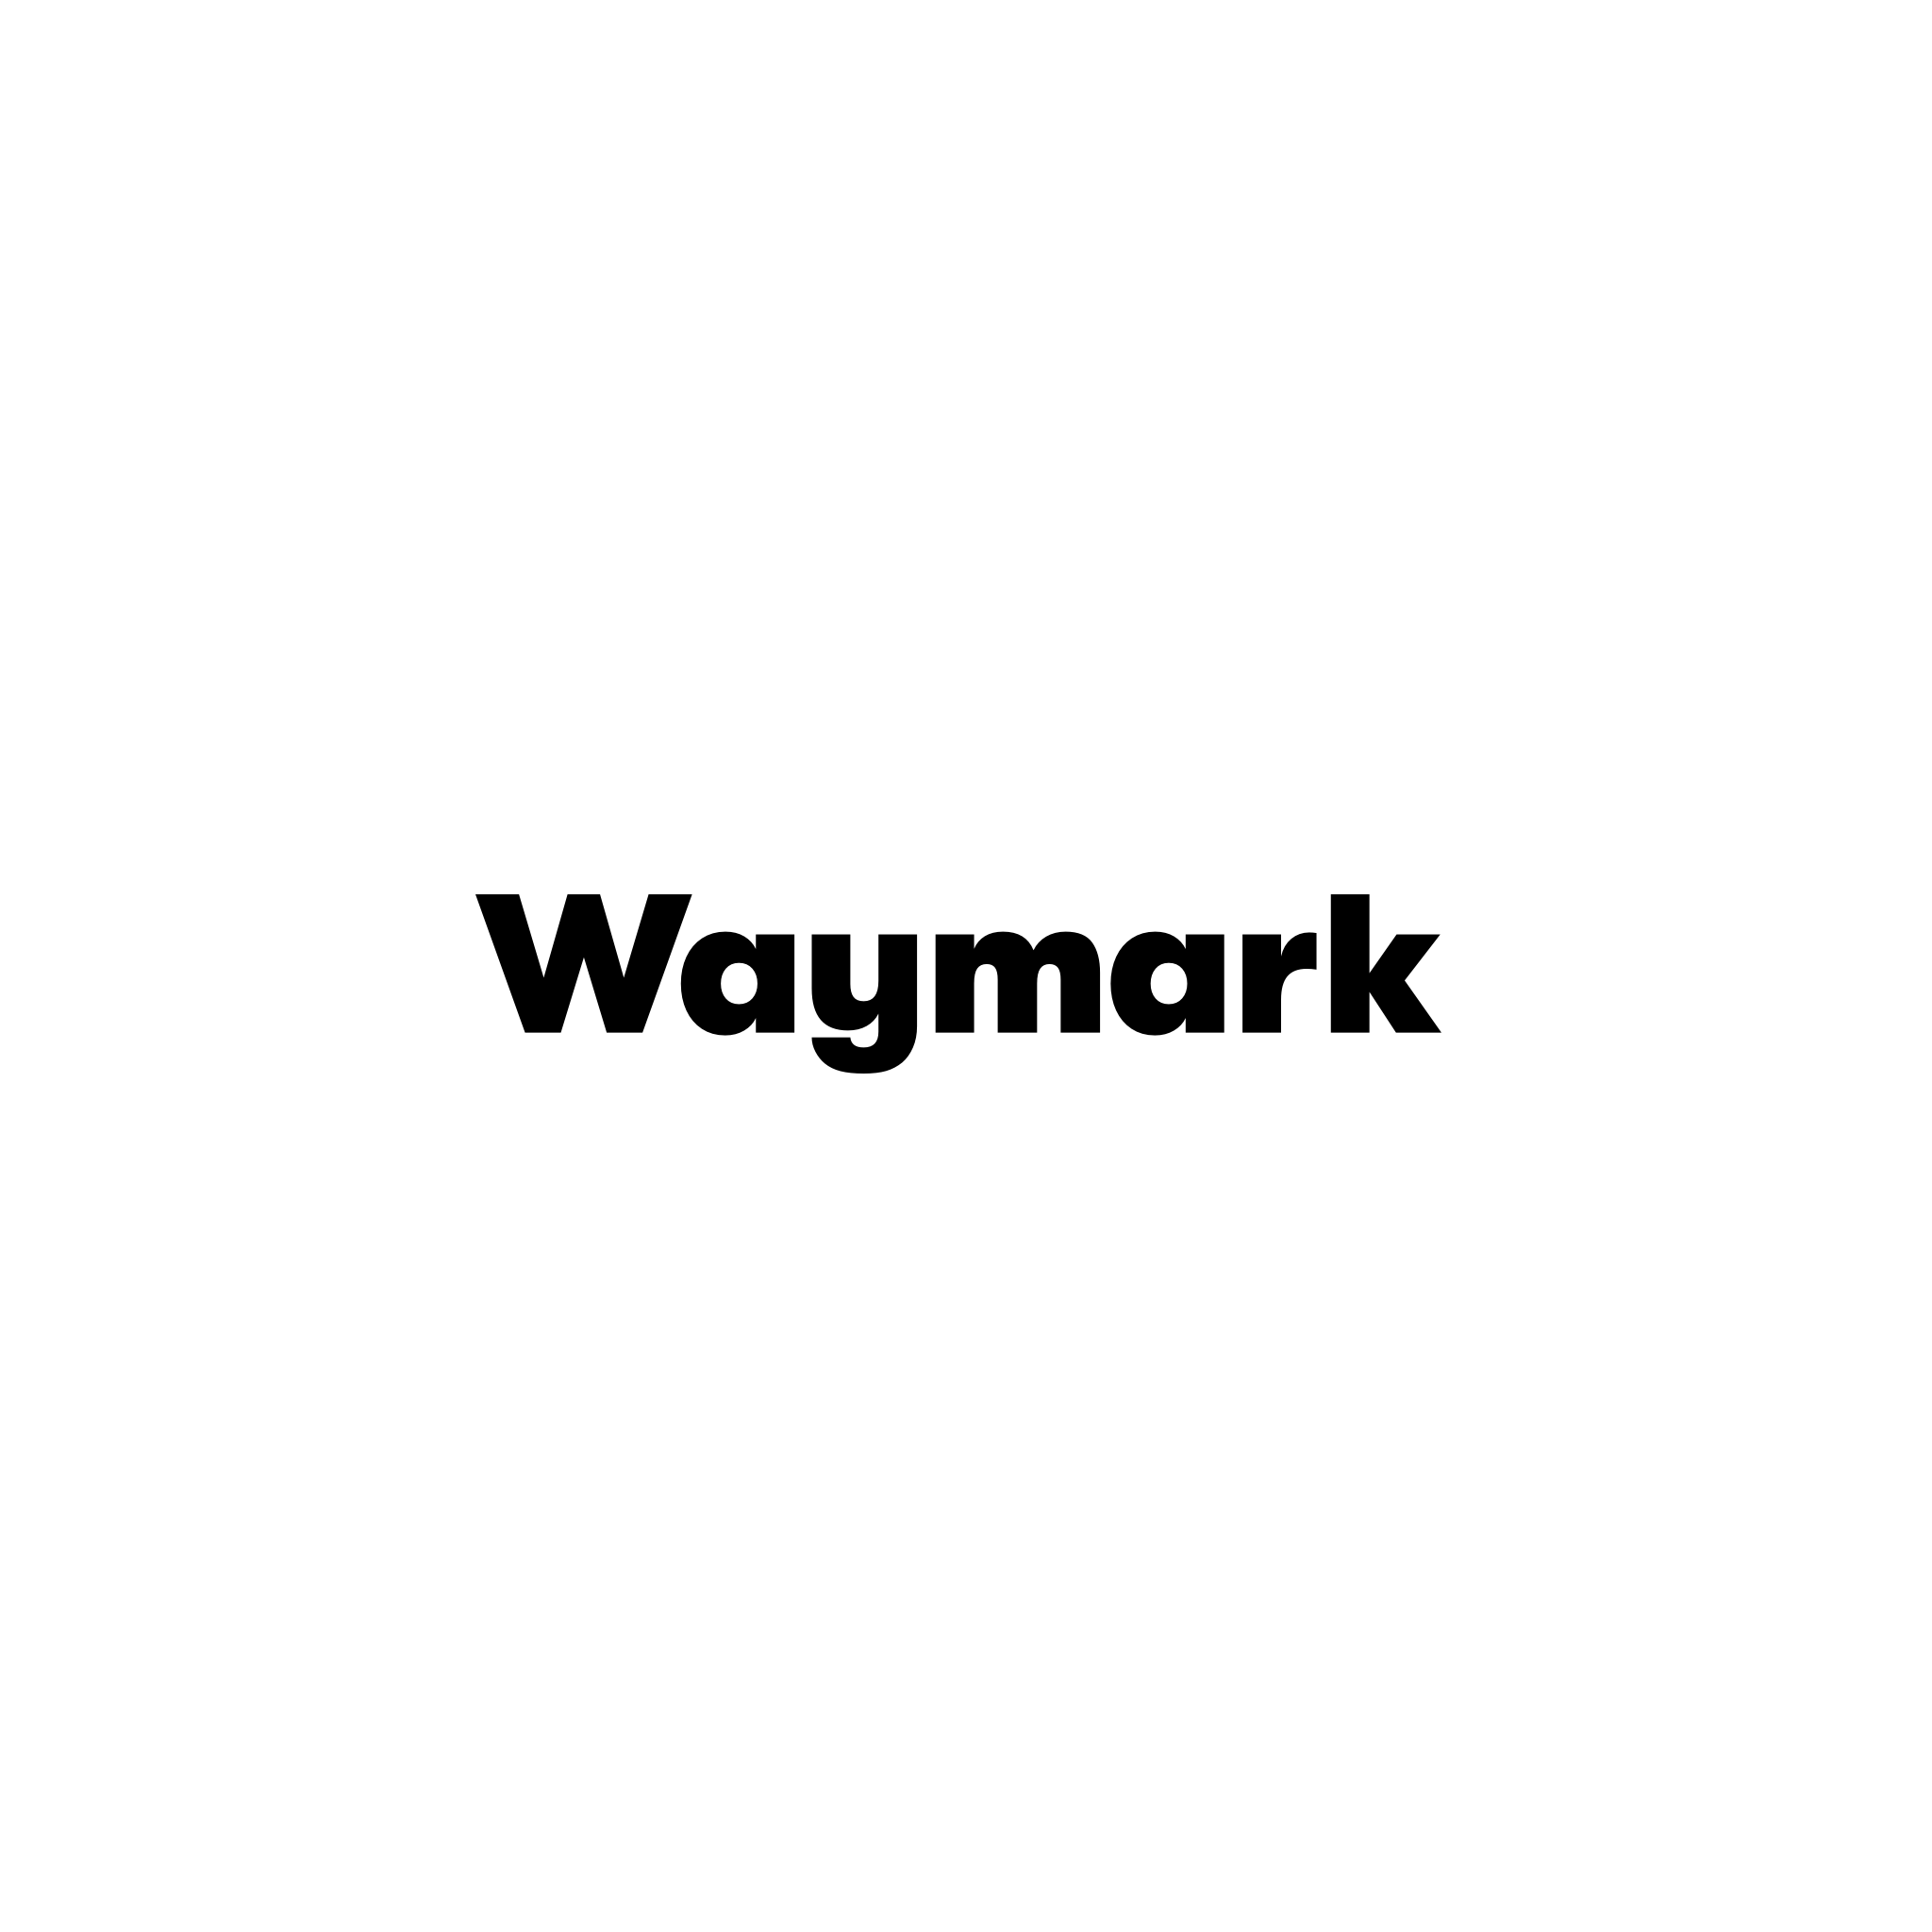 Waymark — Make your own commercial